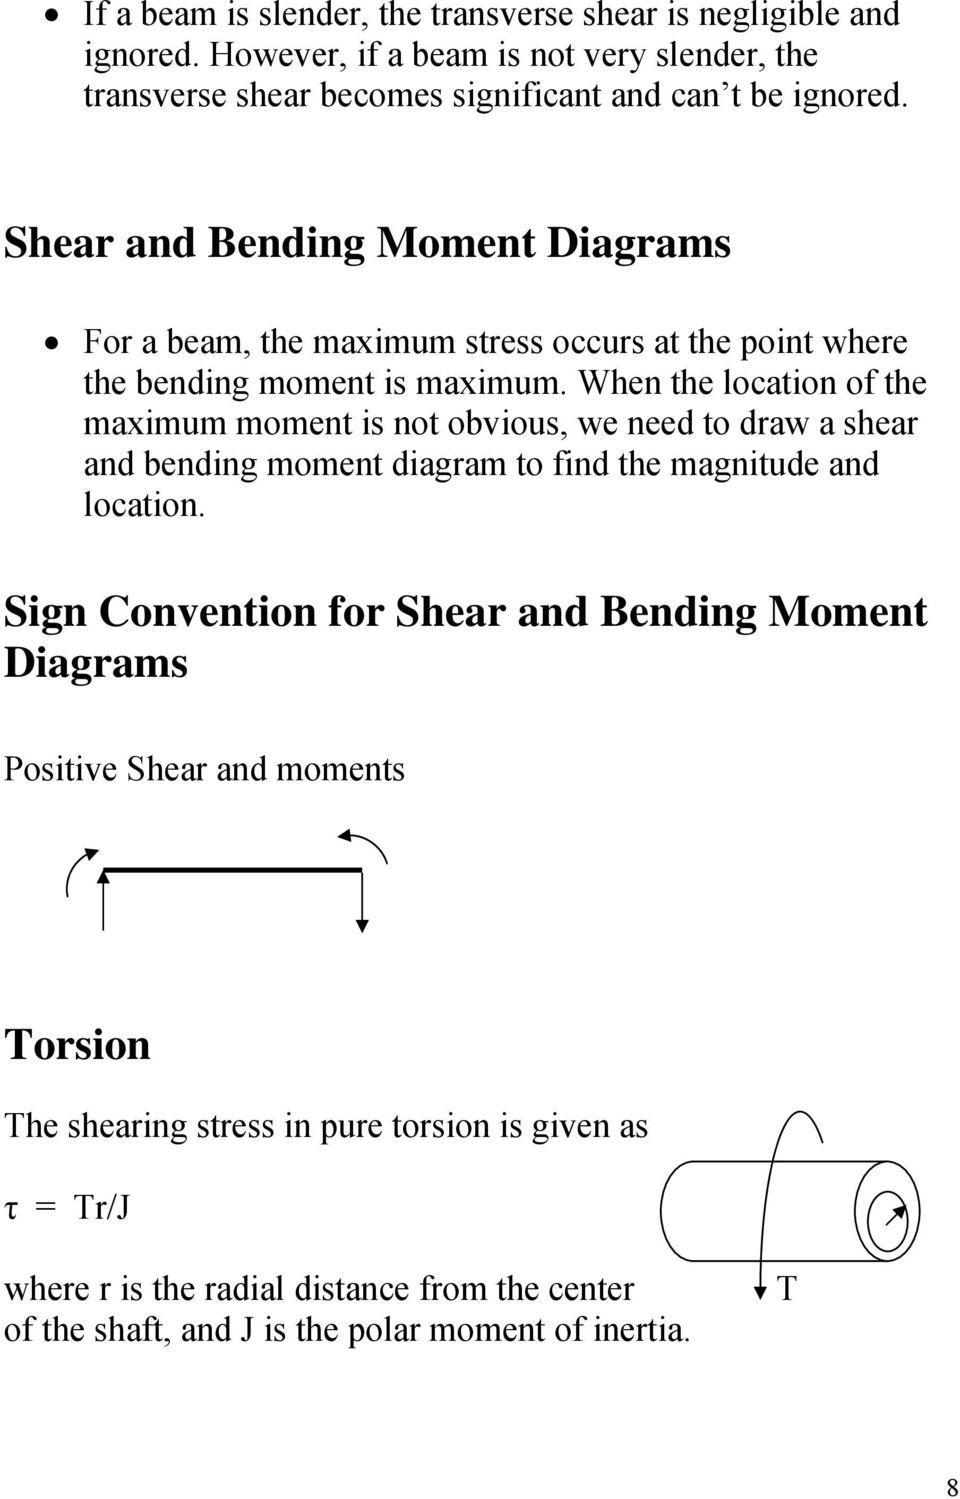 When the location of the maximum moment is not obvious, we need to draw a shear and bending moment diagram to find the magnitude and location.